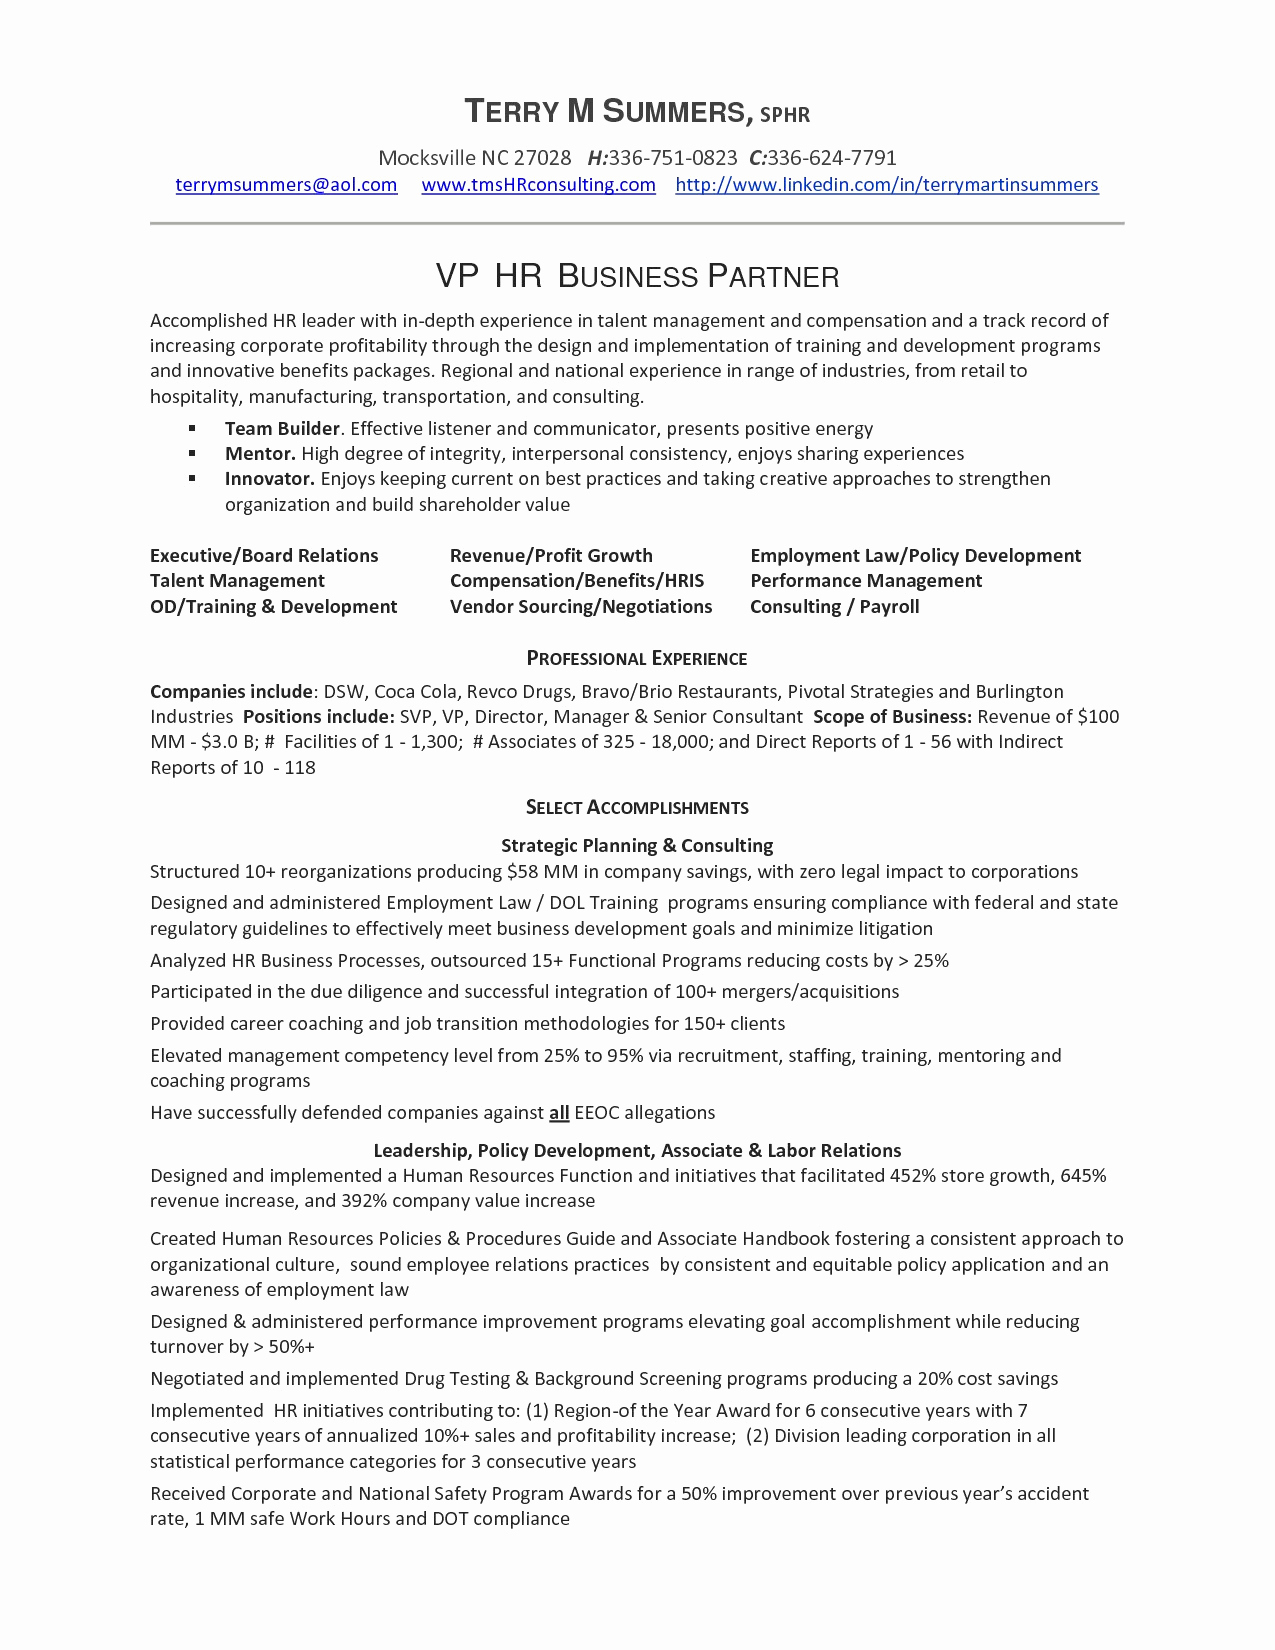 Sales associate Cover Letter Template - Examples Cover Letters for Resumes for Customer Service Beautiful